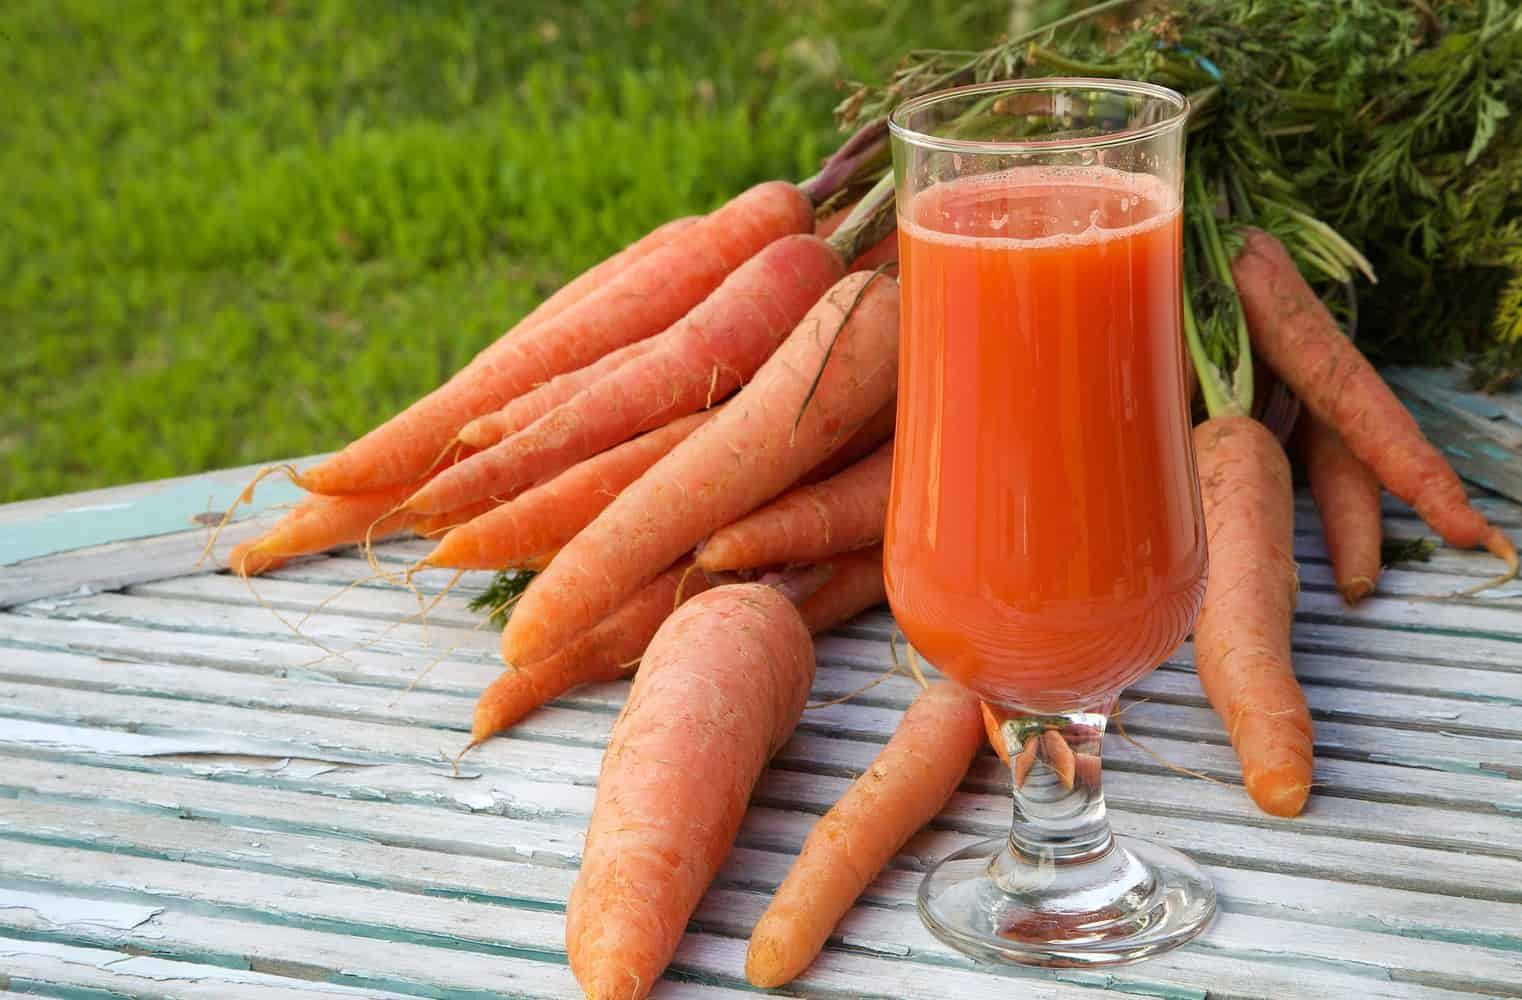 A carrot sticks surrounding a glass of carrot juice.